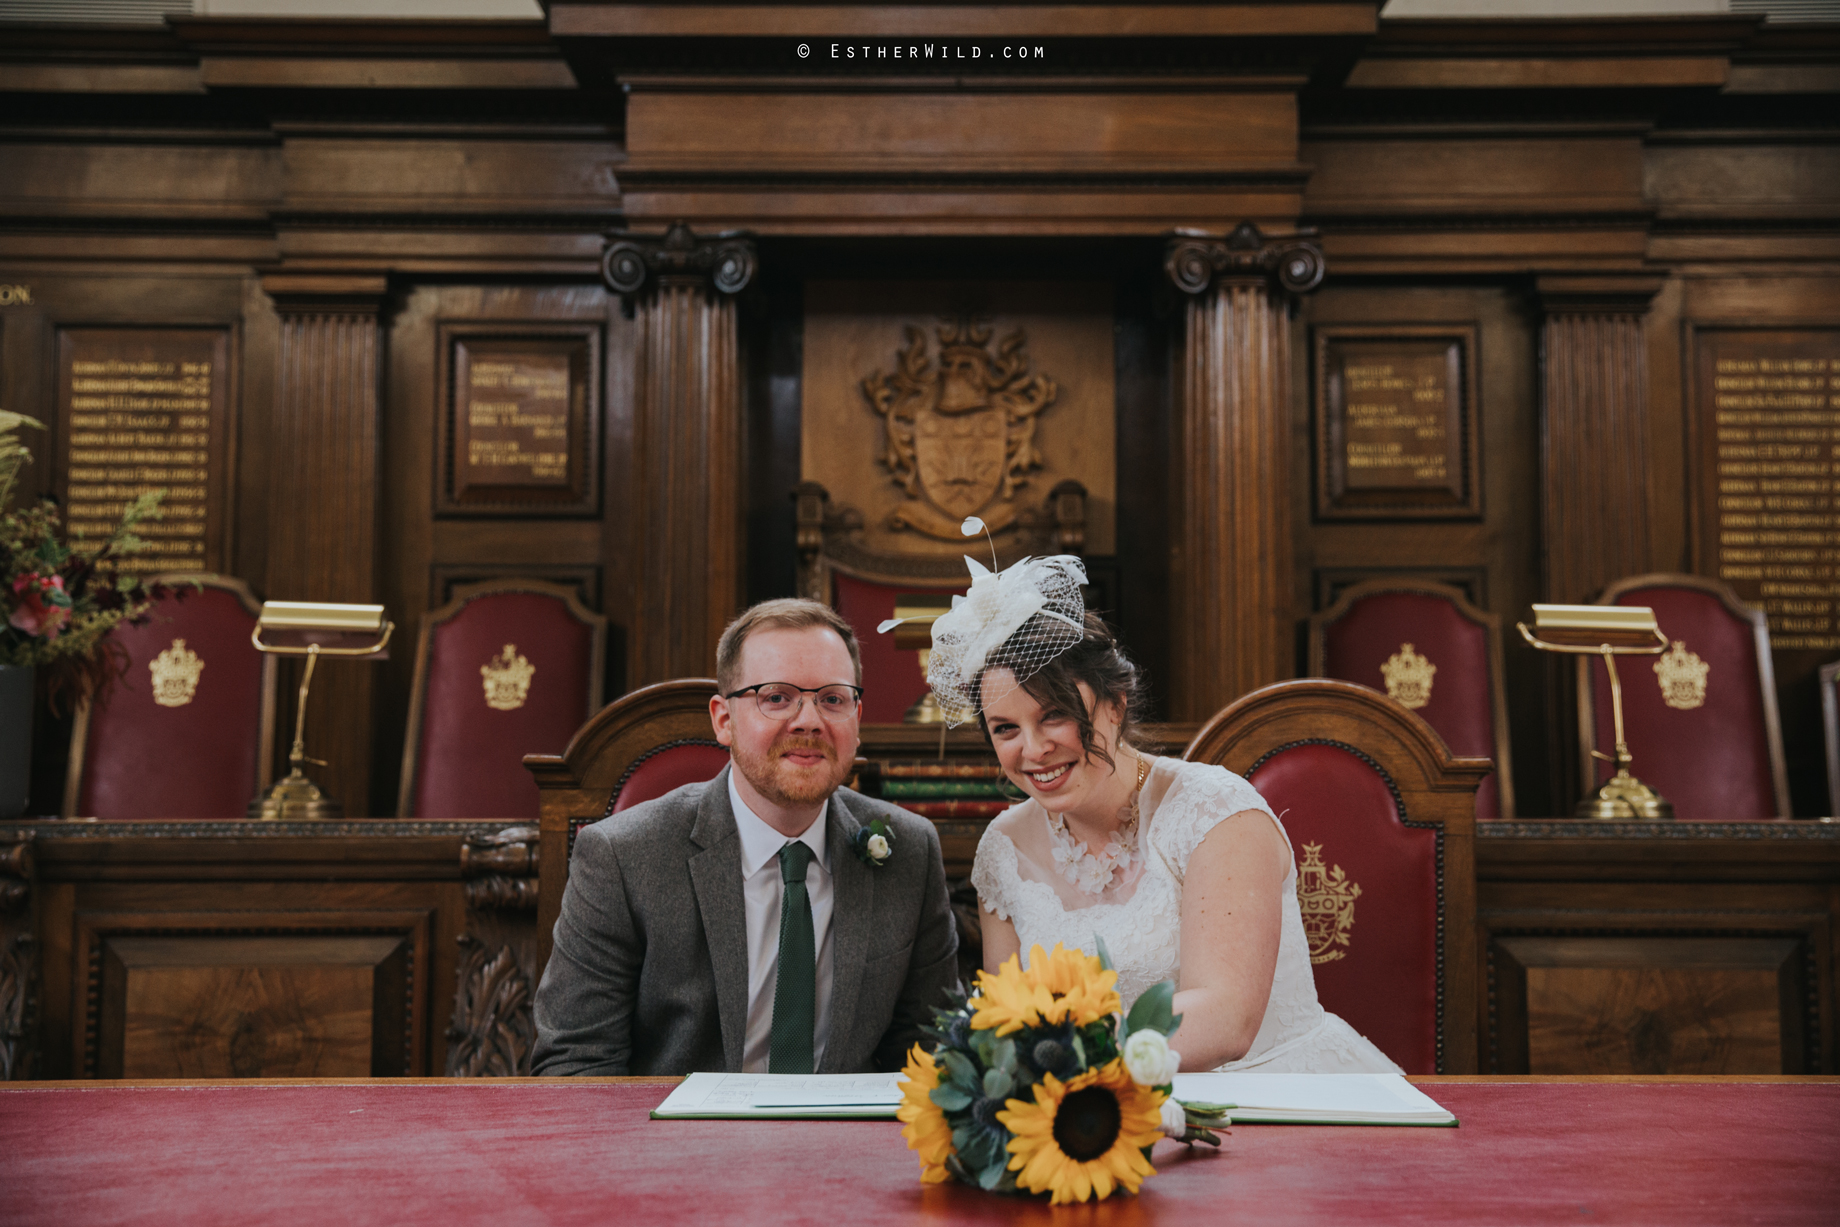 Islington_Town_Hall_Assembly_Hall_Council_Chamber_The_Star_Pub_London_Sacred_Wedding_Copyright_Esther_Wild_Photographer_IMG_0464.jpg